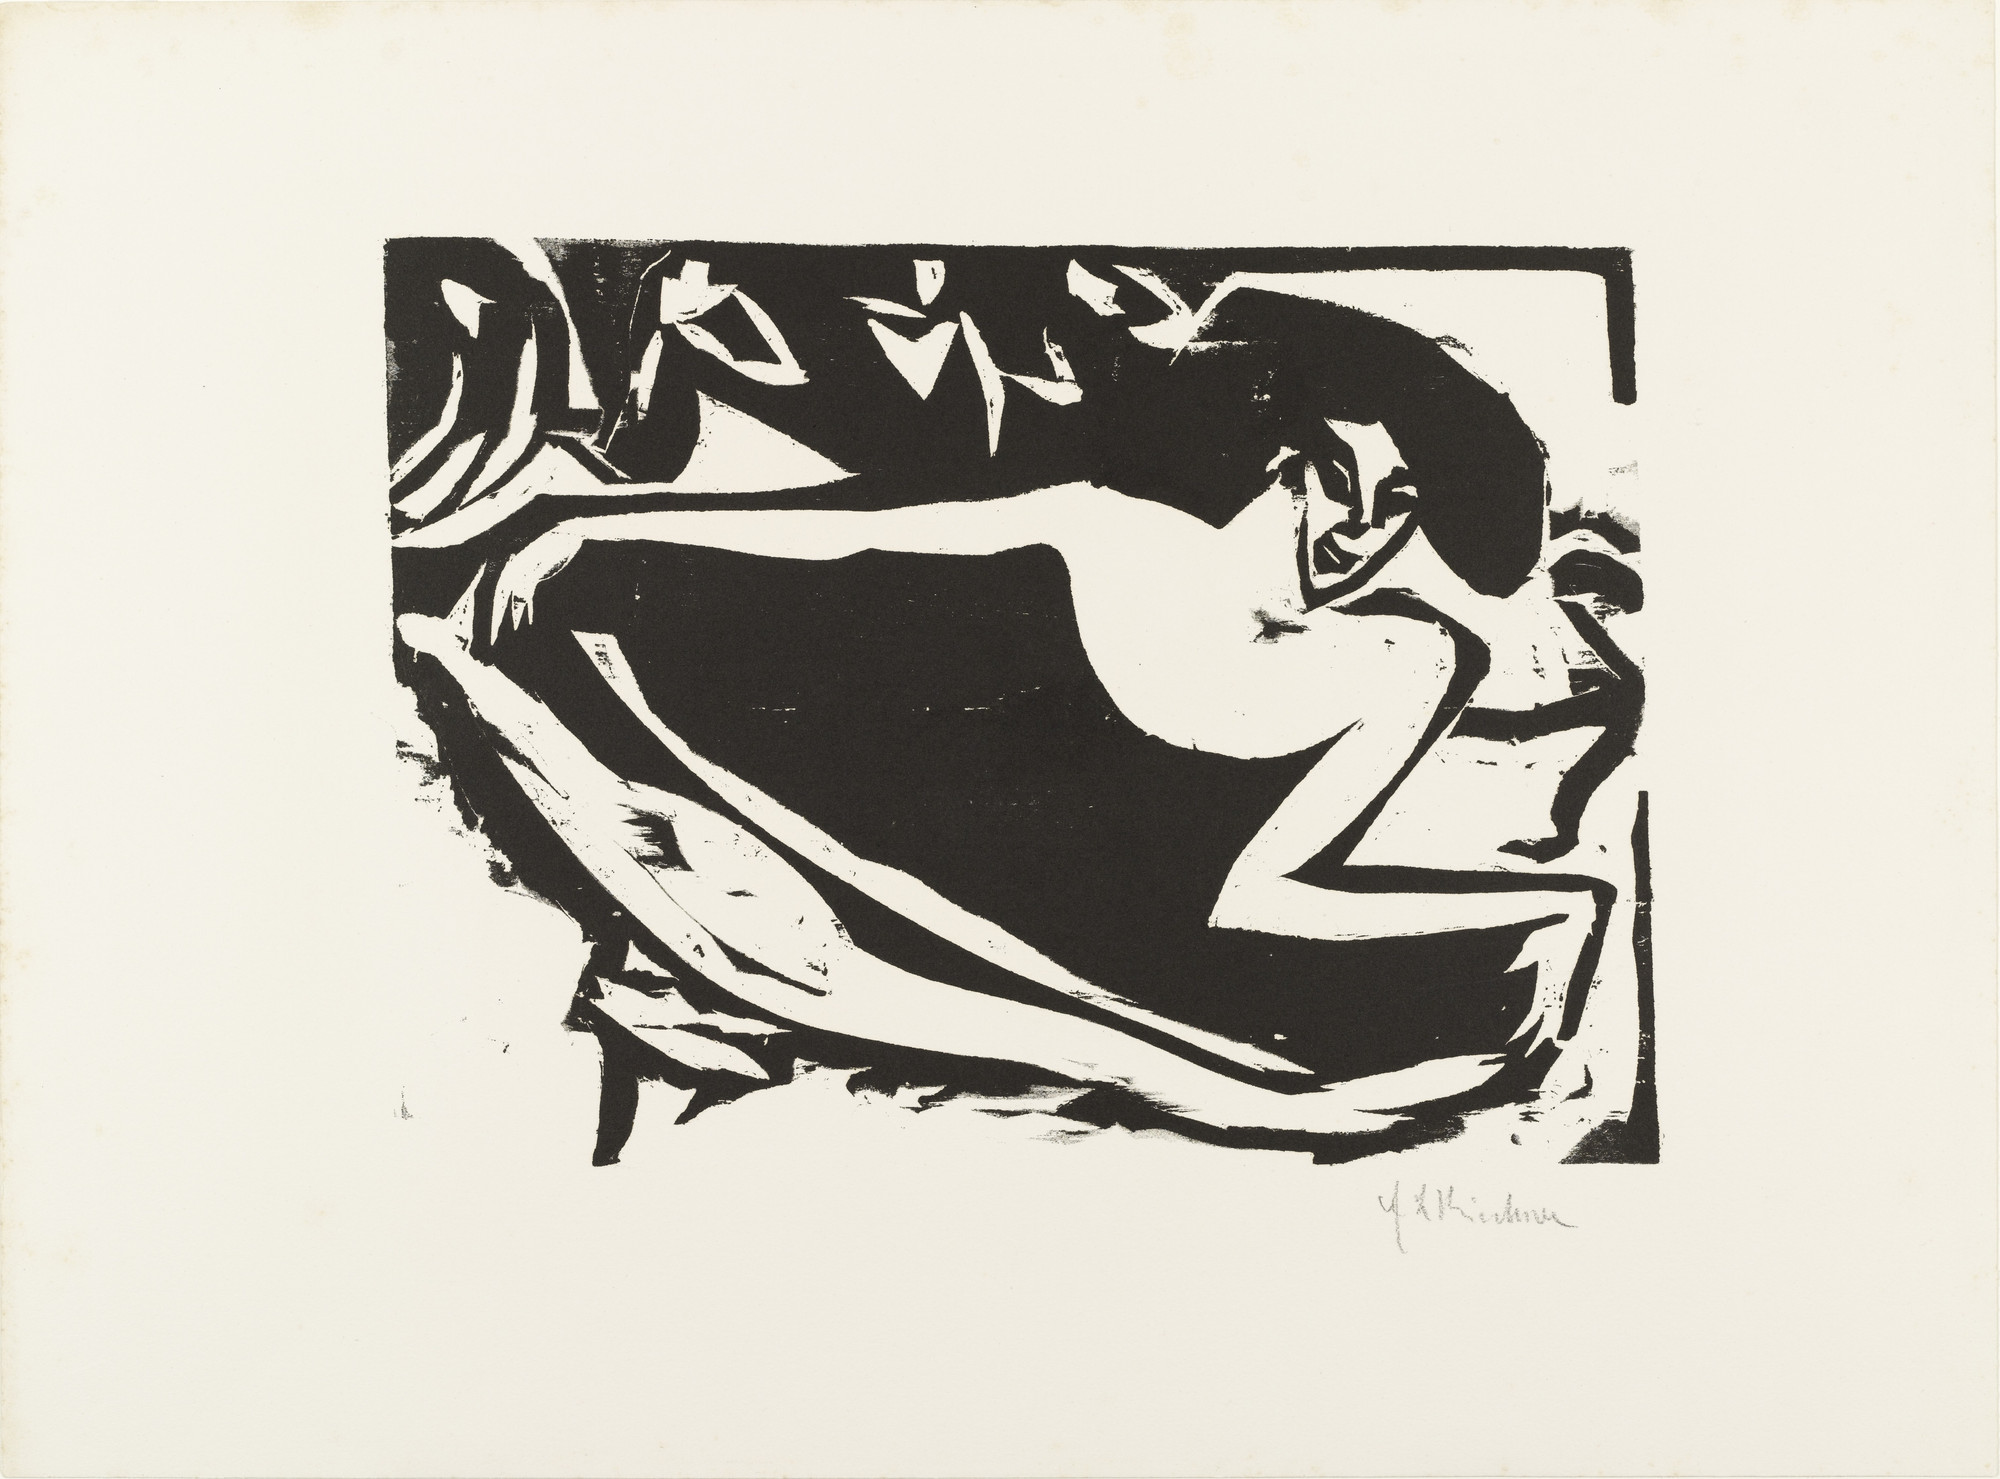 Ernst Ludwig Kirchner. Dancer with Raised Skirt (Tänzerin mit gehobenem Rock) from Brücke 1910. 1909, published 1910